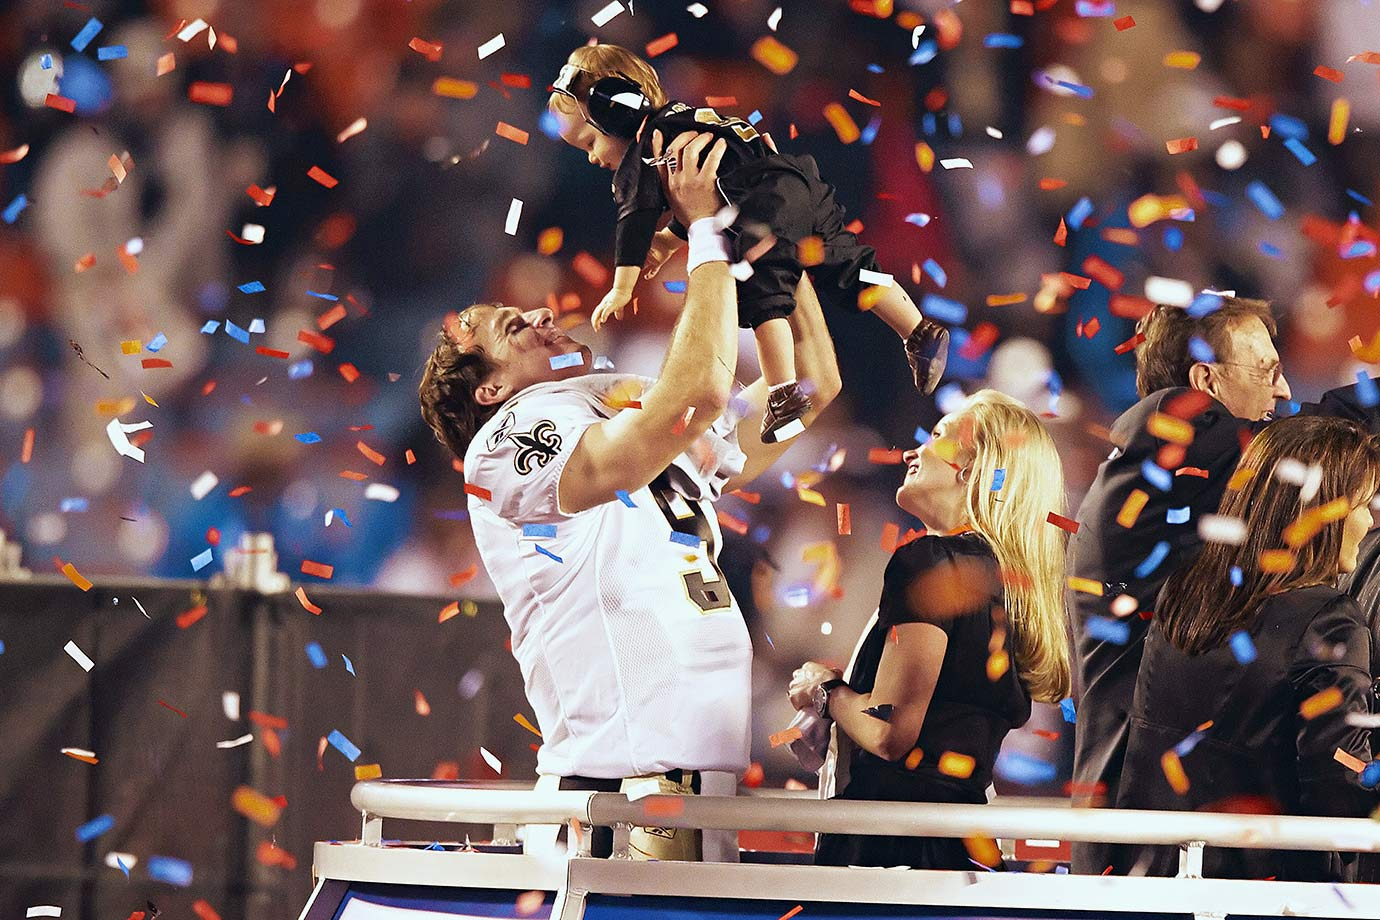 New Orleans Saints quarterback Drew Brees holds up his son Baylen as his wife Brittany looks on after the Saints' 31-17 win over the Indianapolis Colts. The victory was the first Super Bowl title for New Orleans and came just four years after Hurricane Katrina decimated the city and forced the Saints out of the Superdome for a year.